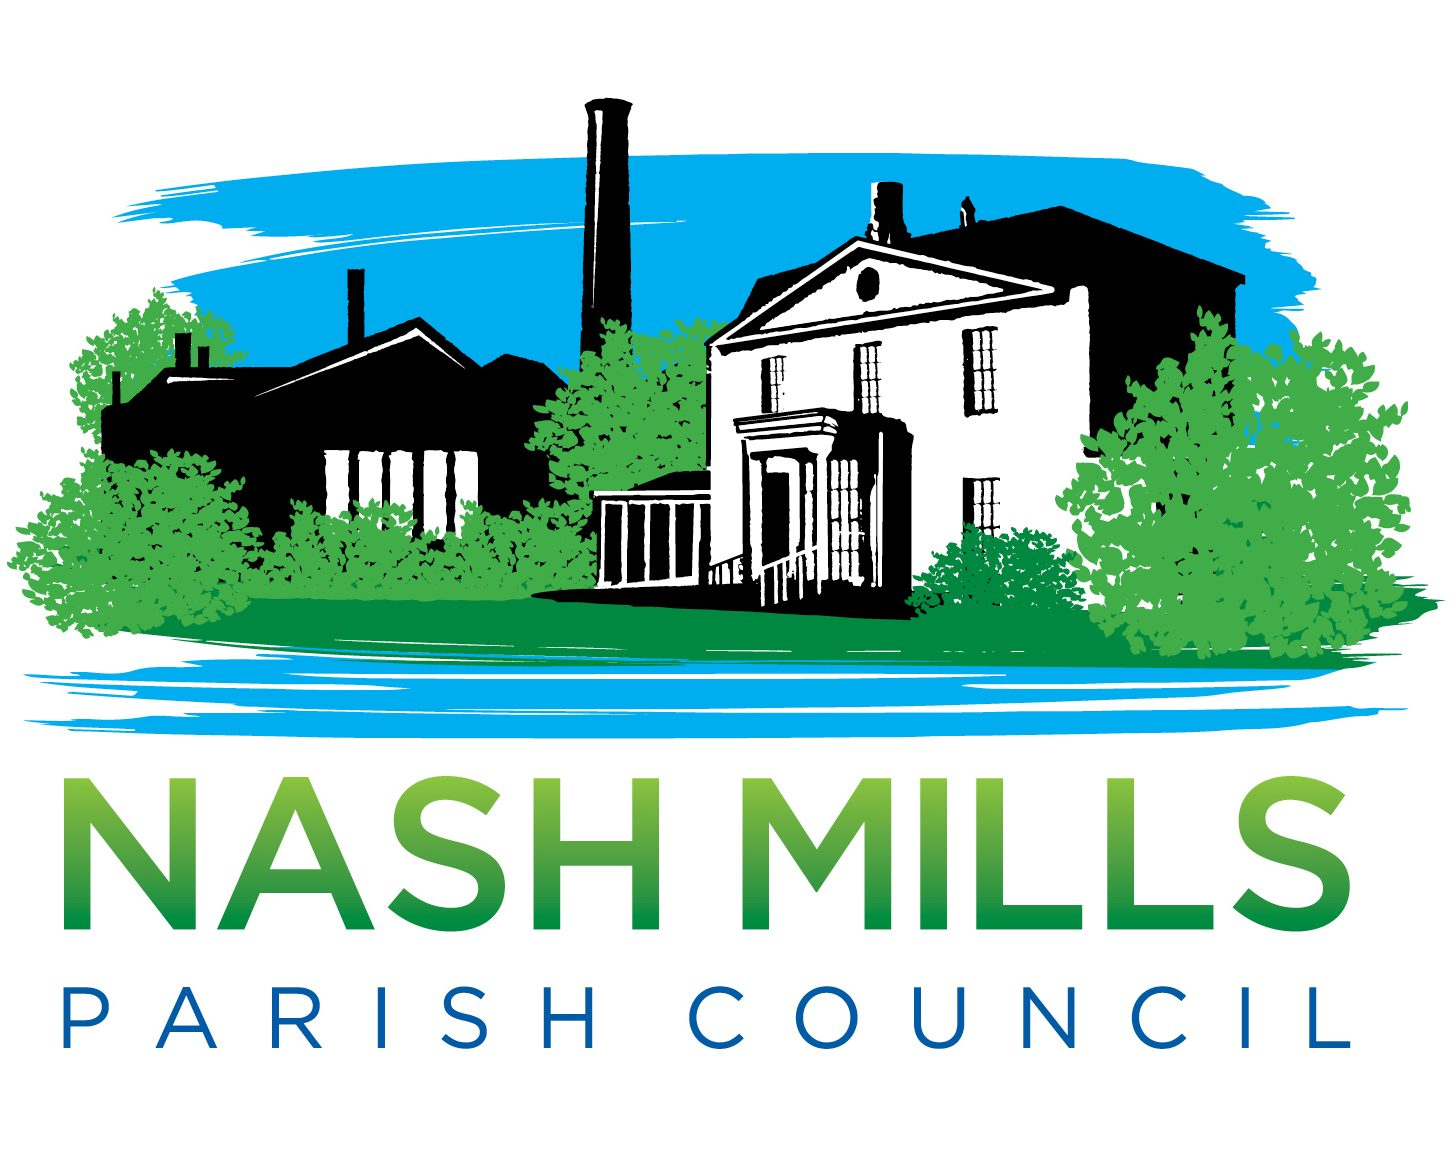 Nash Mills Parish Council